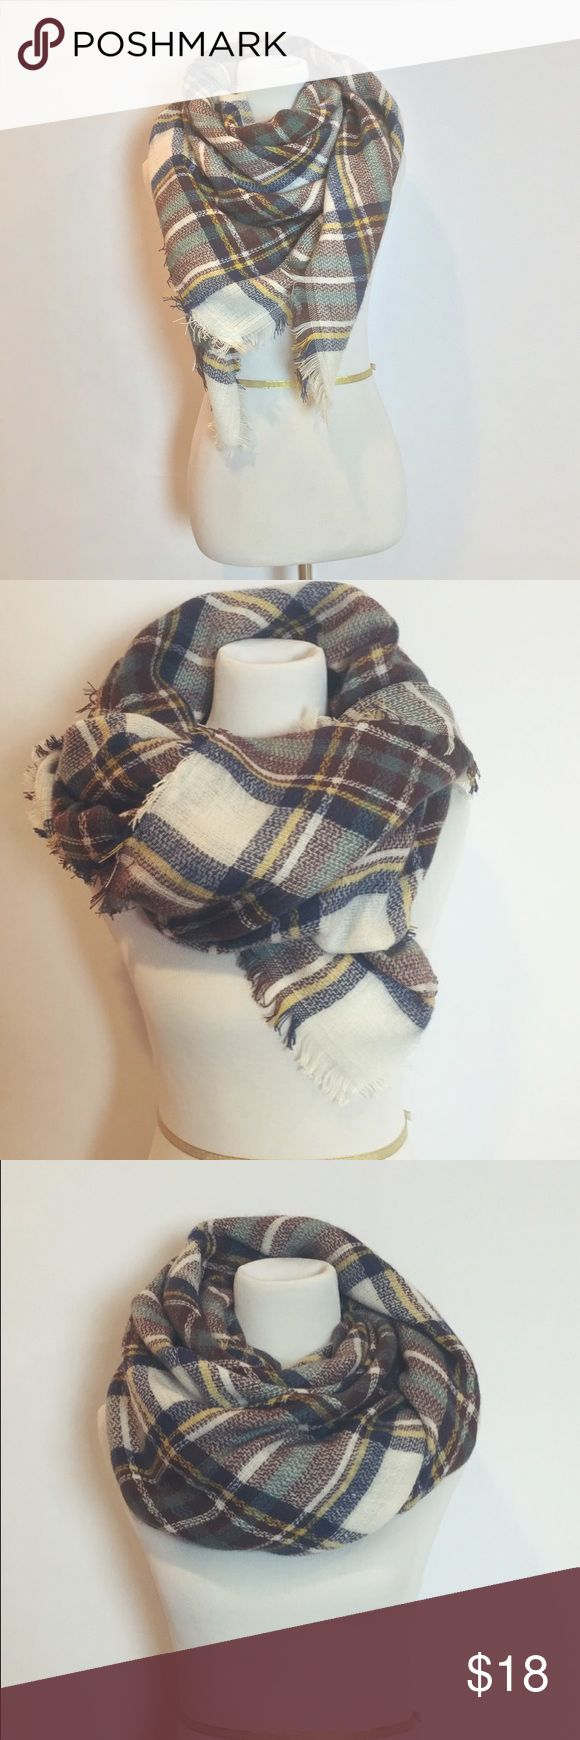 Plaid Oversized Tartan Blanket Scarf Beautiful oversized plaid blanket scarf. Made from high quality, medium weight, soft fabric. Cut wide & extra long to allow for even more layering & styling opportunities. This piece is finished with fringed edges for an added bohemian & vintage touch. Scarf is made out of an acrylic cotton blend. NWOT! Never worn. Accessories Scarves & Wraps